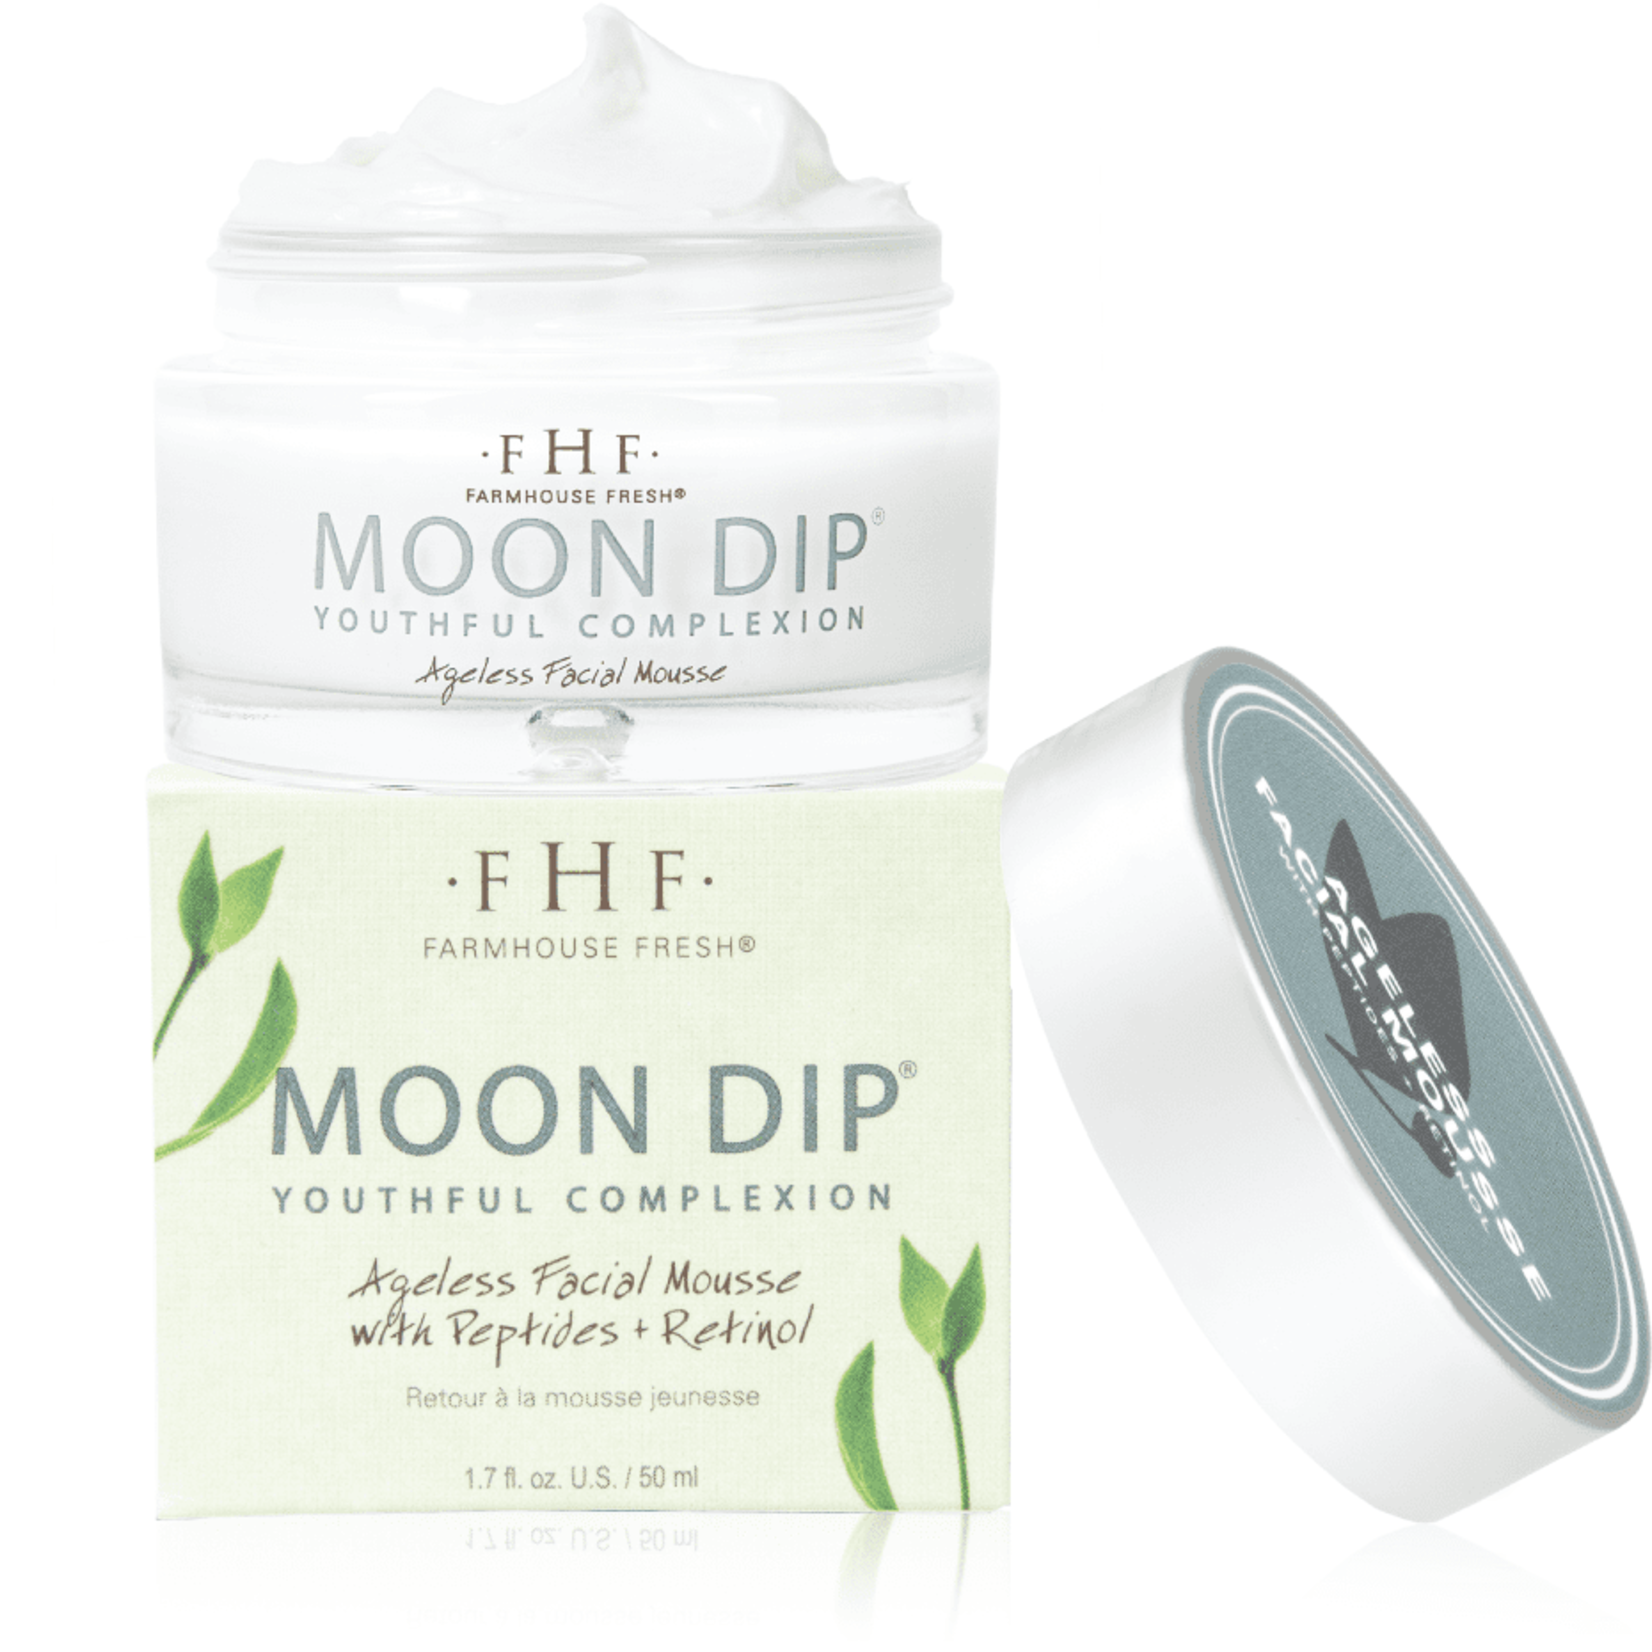 Farmhouse Fresh Moon Dip® Youthful Complexion Ageless Facial Mousse with Peptides + Retinol